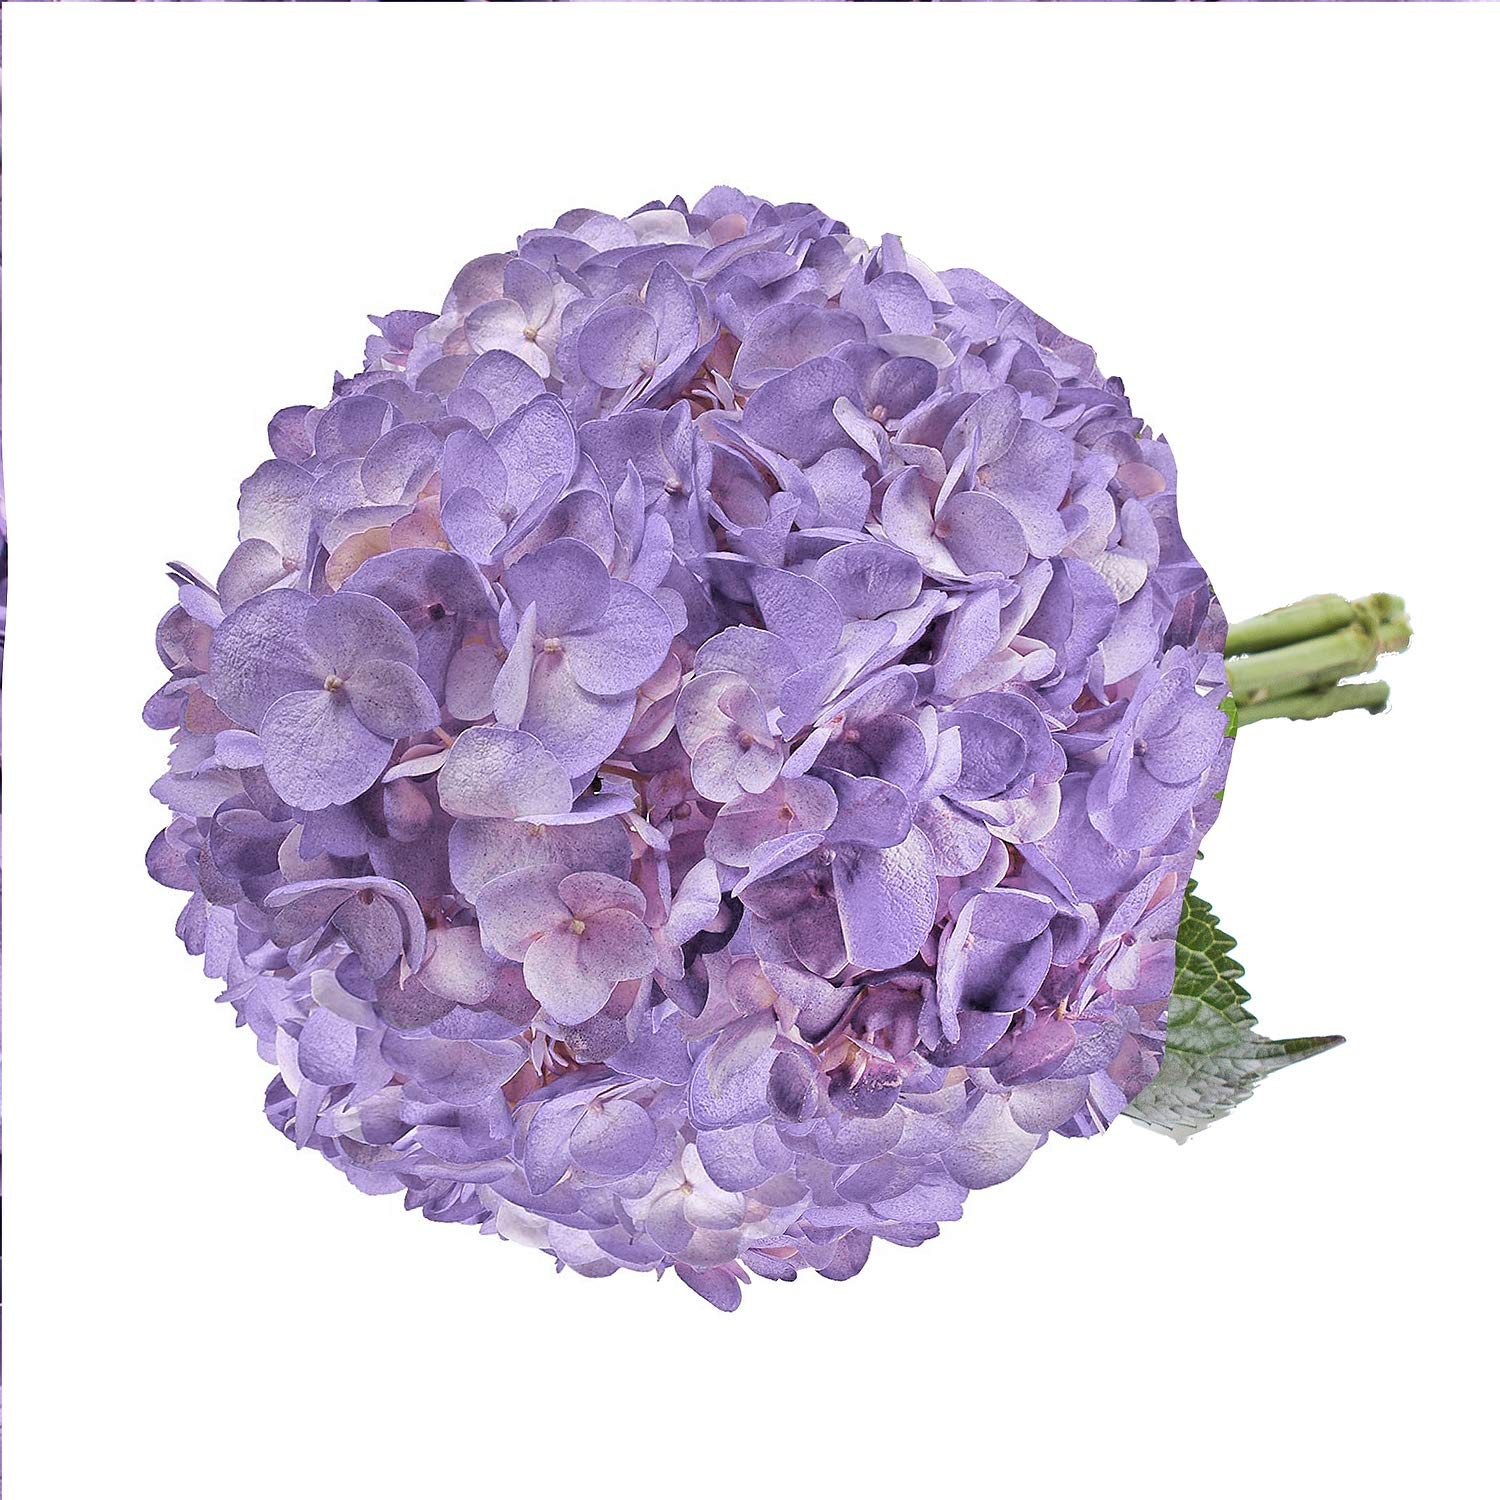 Farm Fresh Natural Painted Lavender Hydrangeas - Pack 15 by Bloomingmore (Image #3)